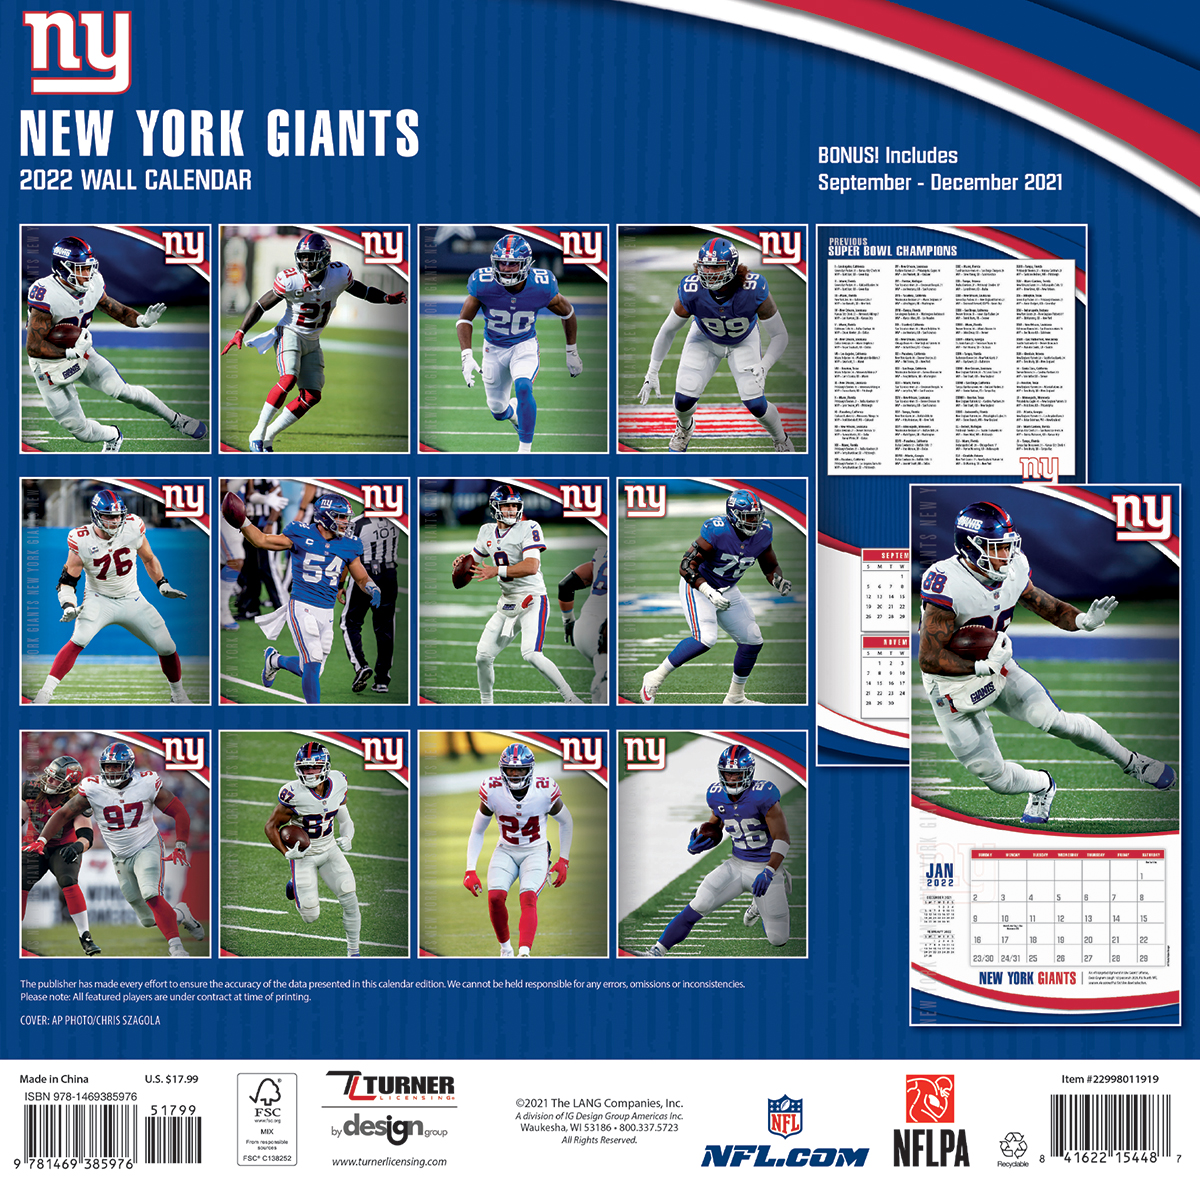 New York Giants Home Record